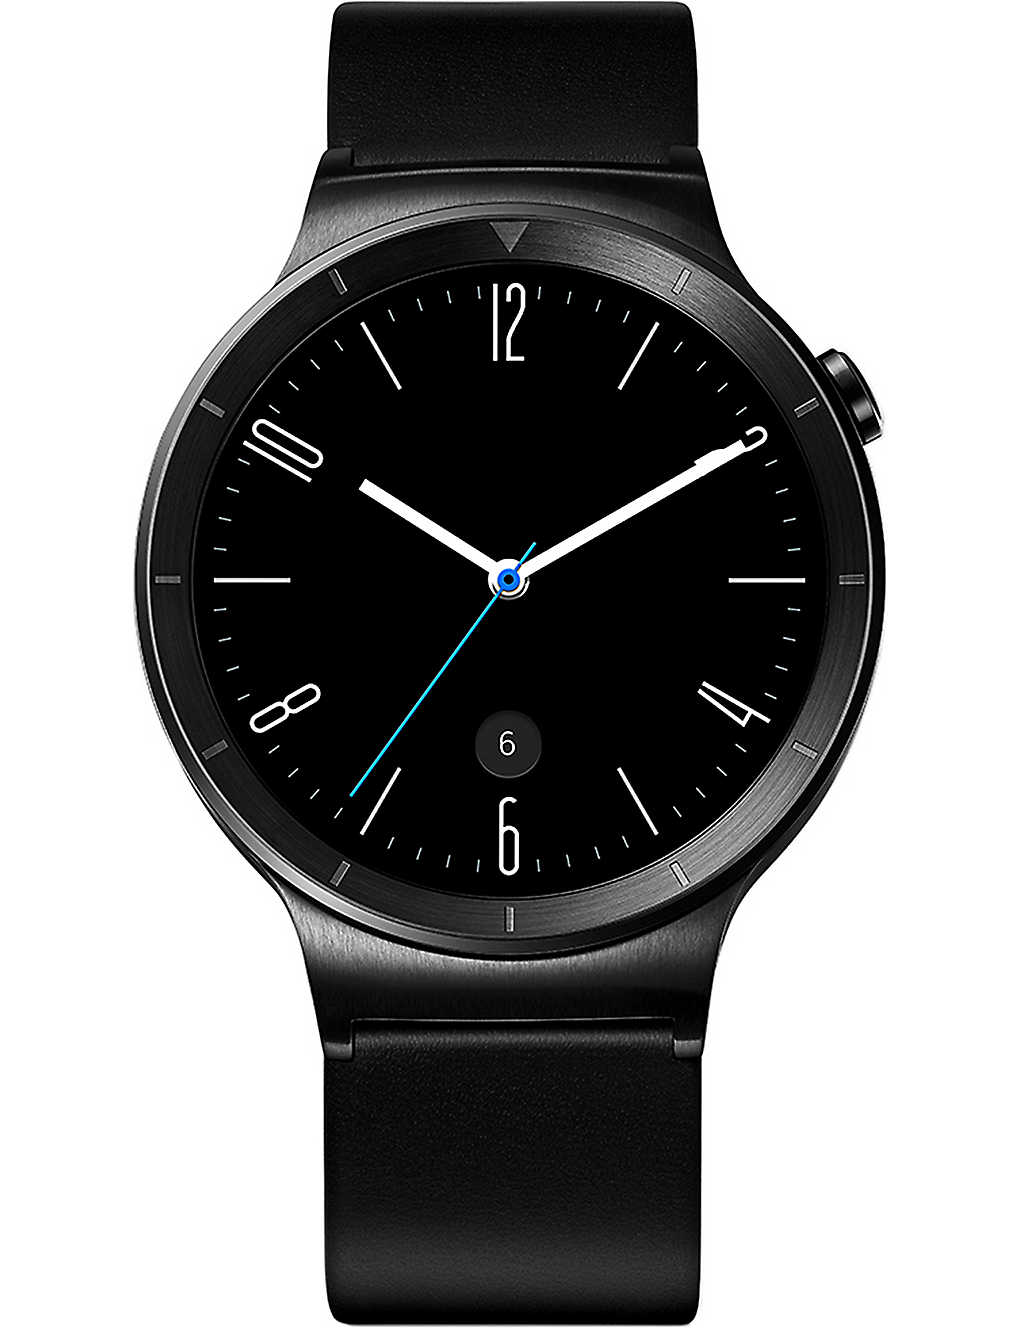 Huawei Active Leather Strap Smart Watch Stainless Steel Mesh Band Us Warranty No Recent Searches